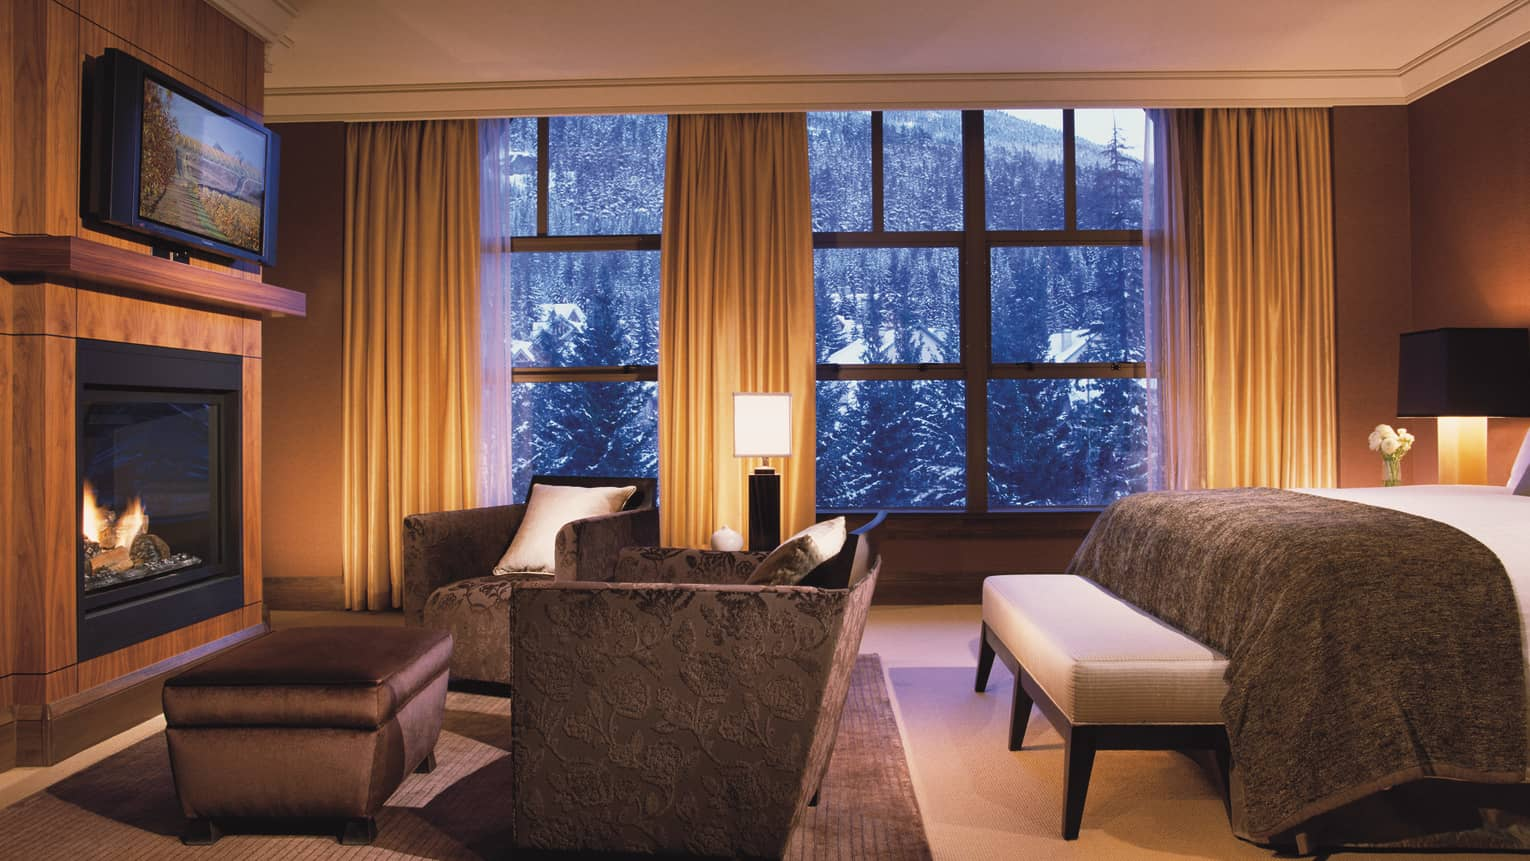 Edge of hotel room bed, sofa and ottoman facing TV and gas fireplace, snowy mountain views from window